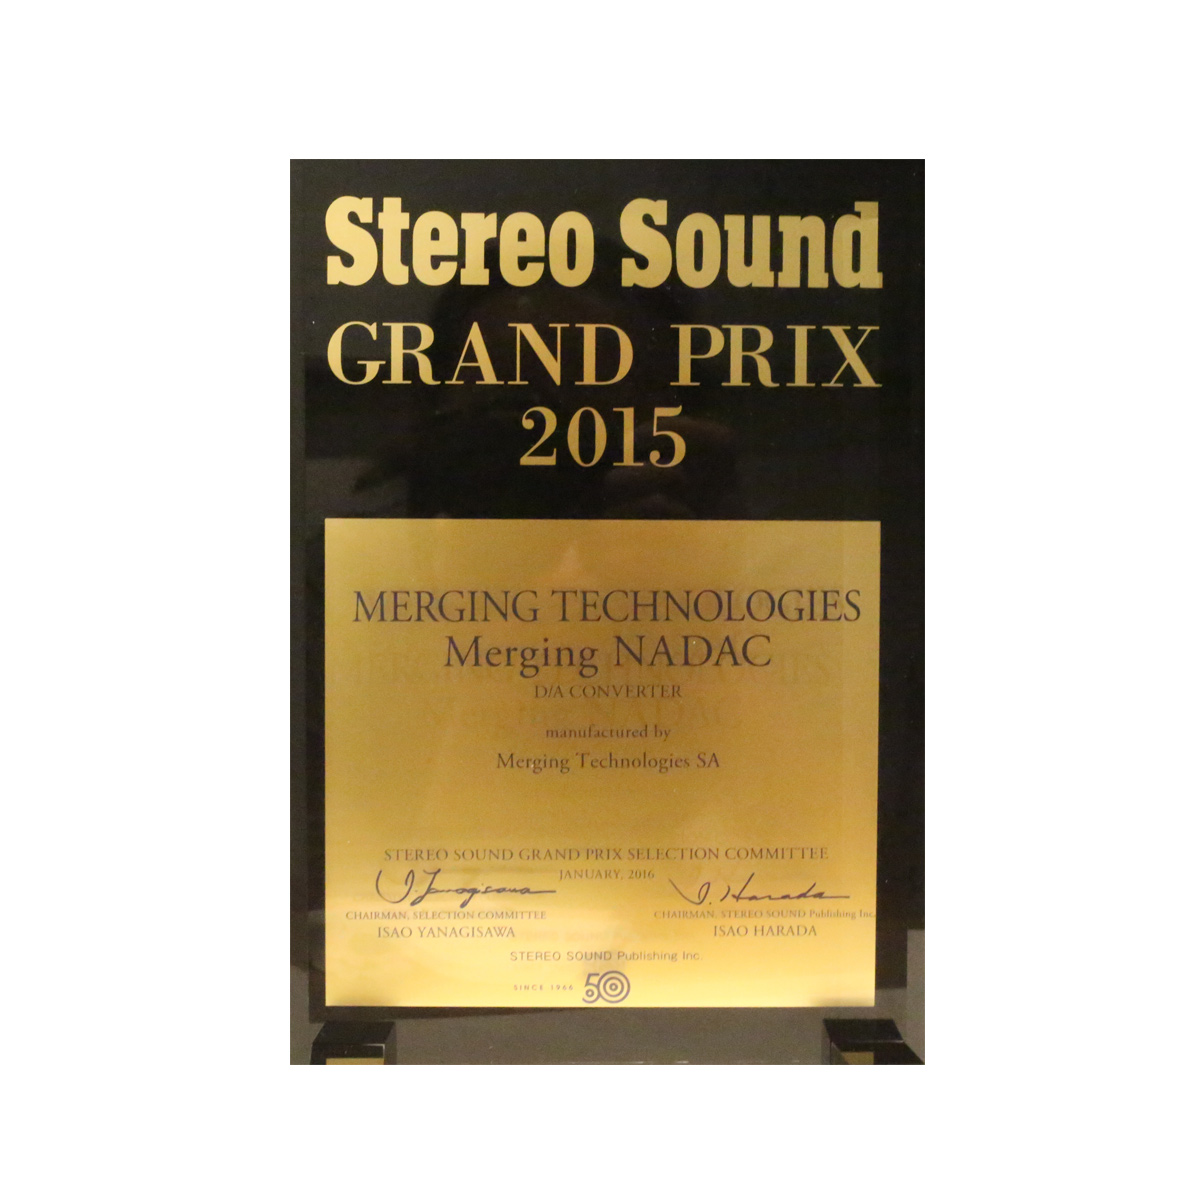 Stereo Sound Grand Prix 2015